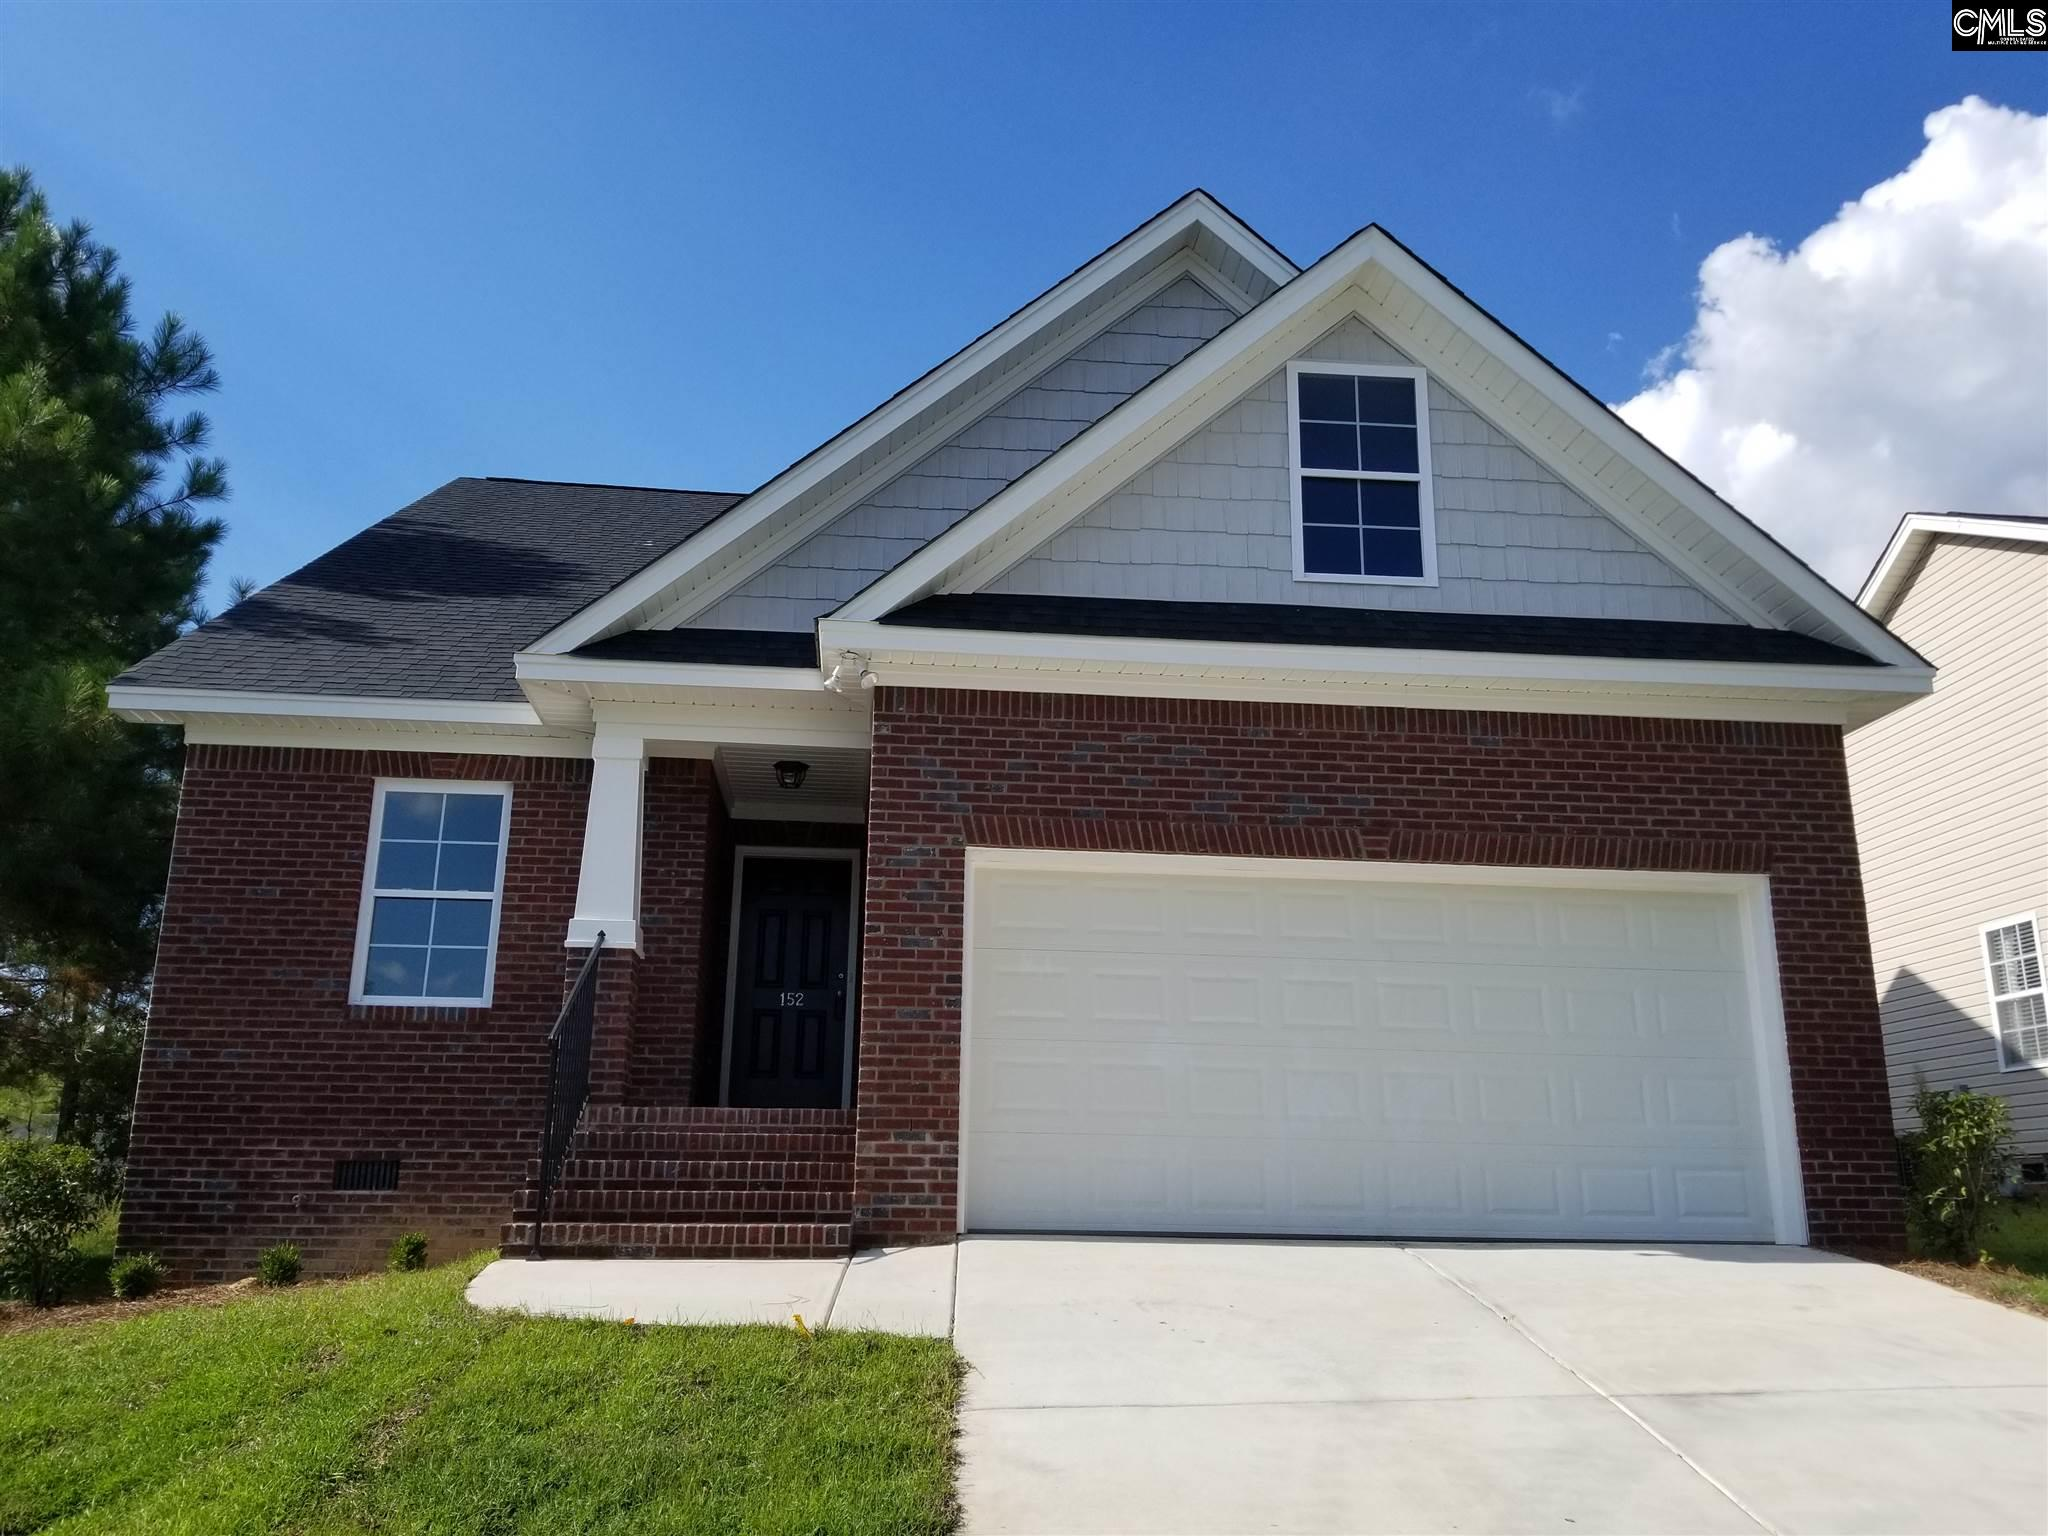 152 Sweetoak Columbia, SC 29223